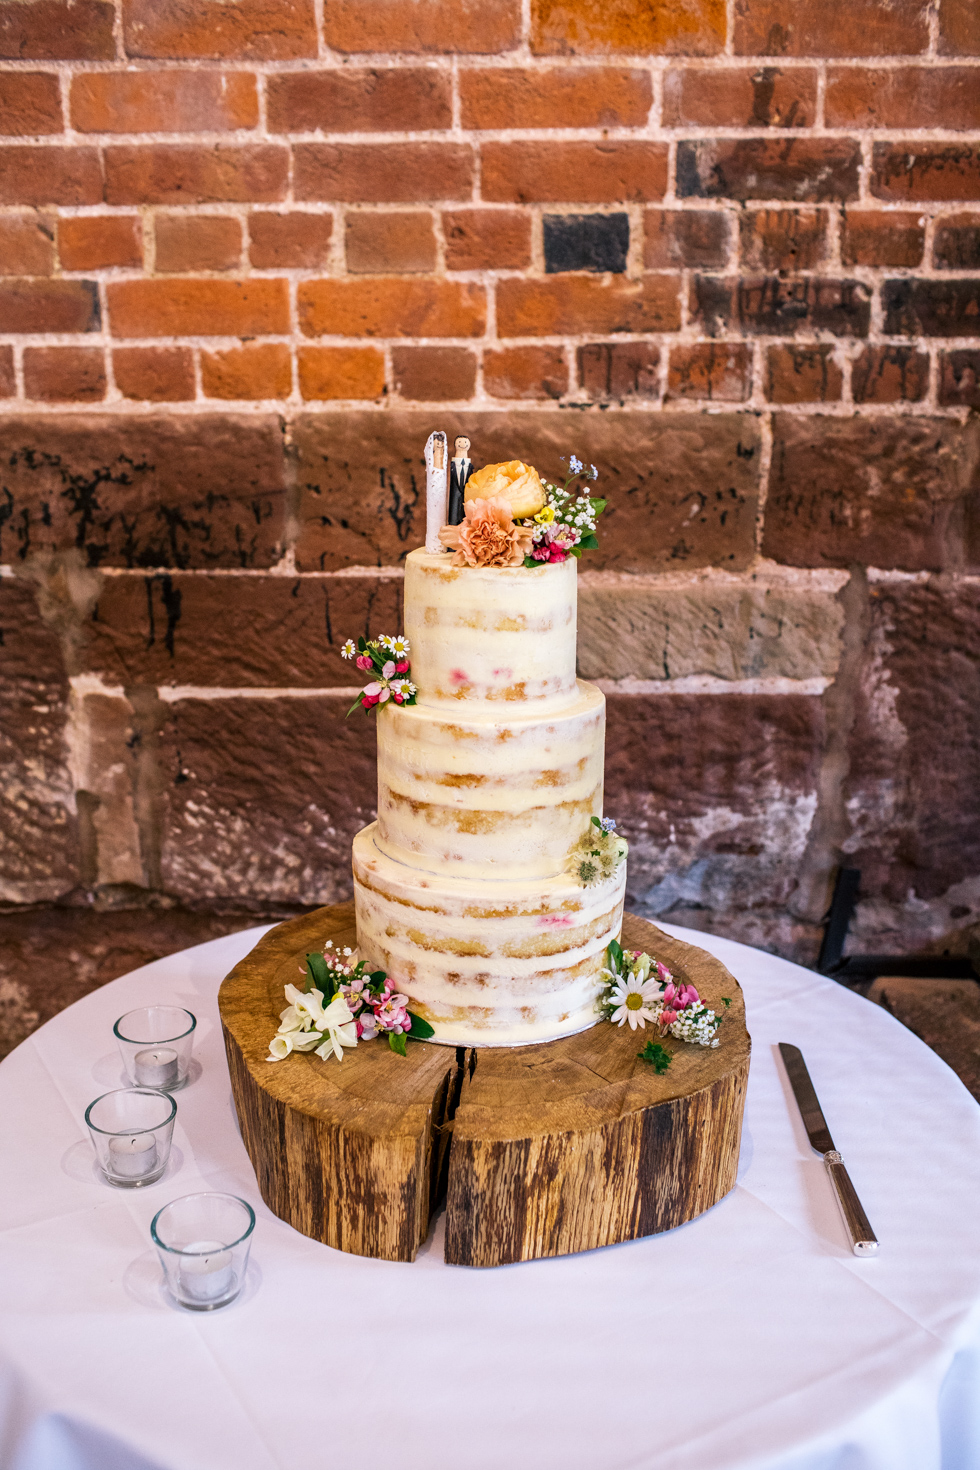 naked 3 tier wedding cake made the bride being setup and decorating with real flowers at the Curradine barns